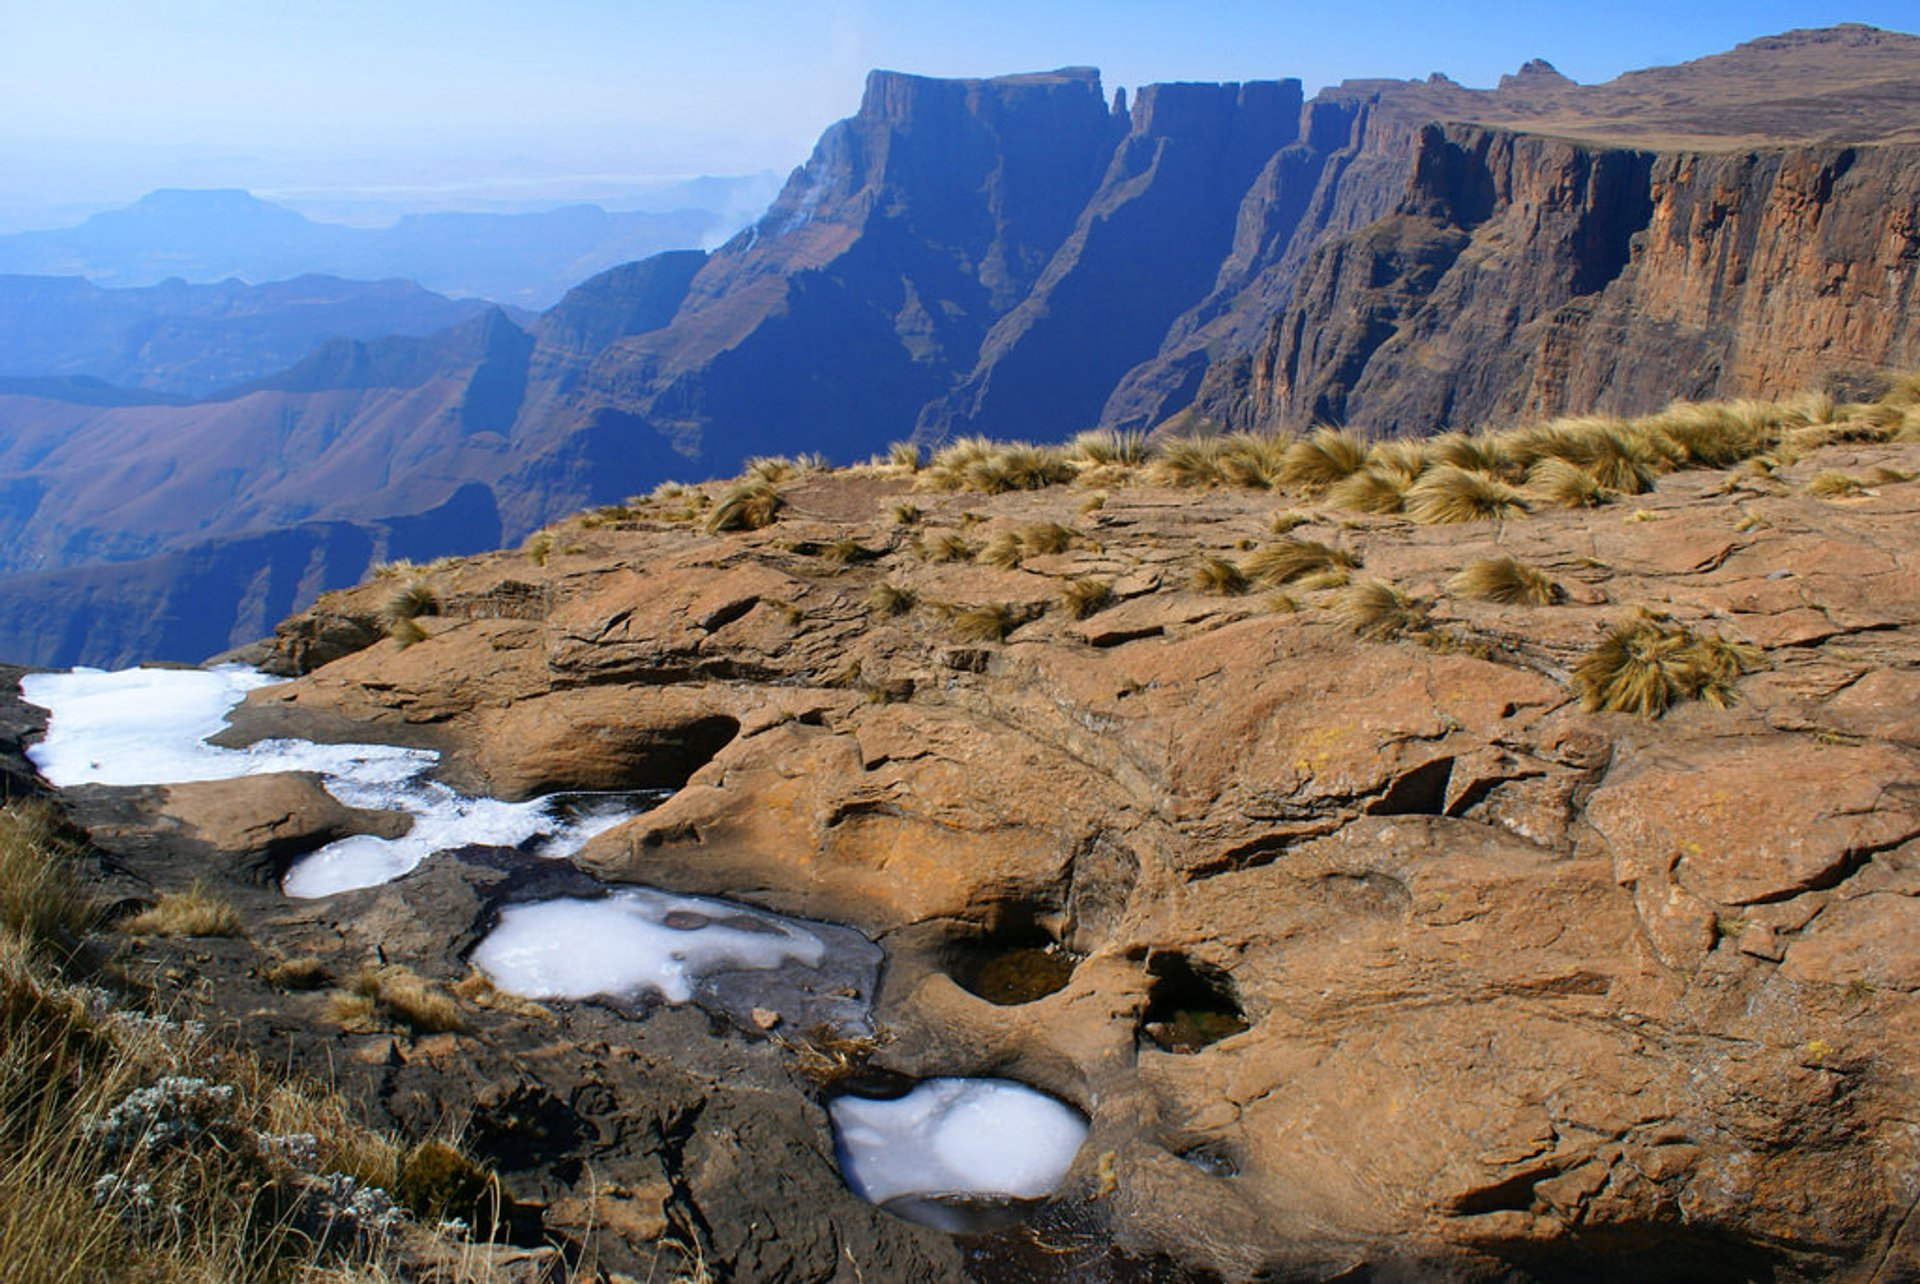 Upper part of the Drakensberg waterfalls, frozen in winter 2019